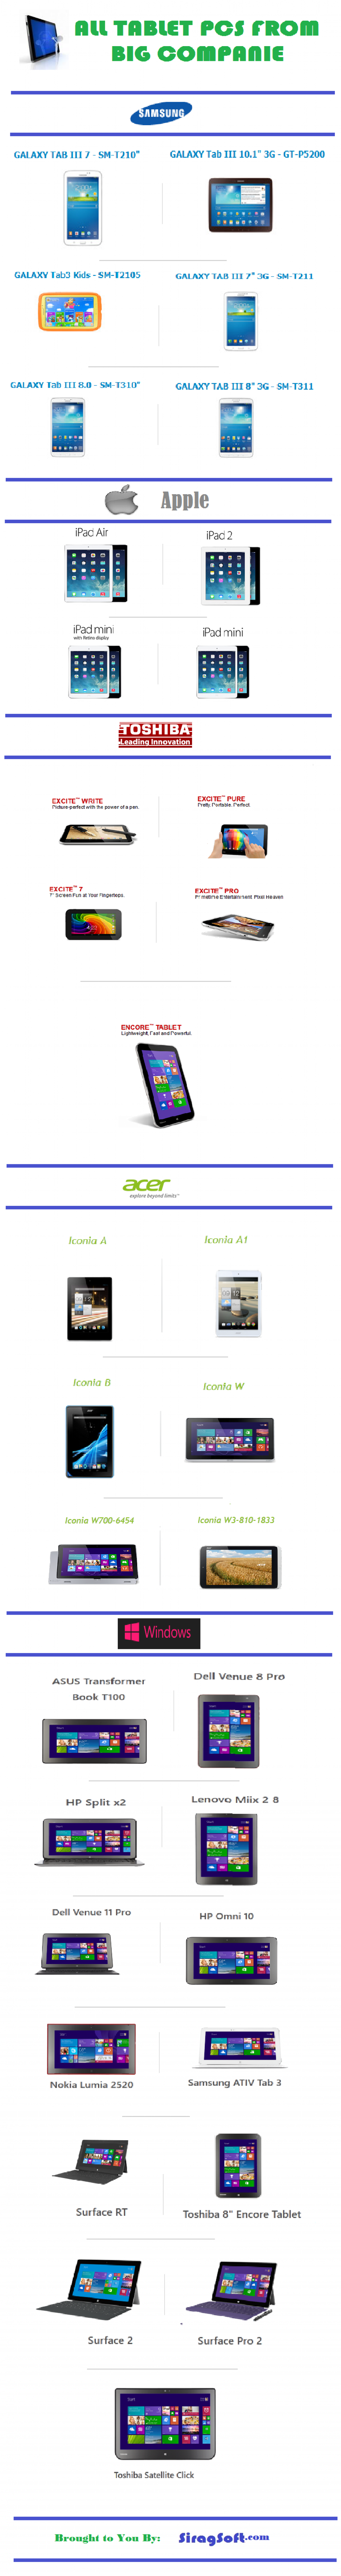 All Best Tablet PCs from Big Guys Infographic